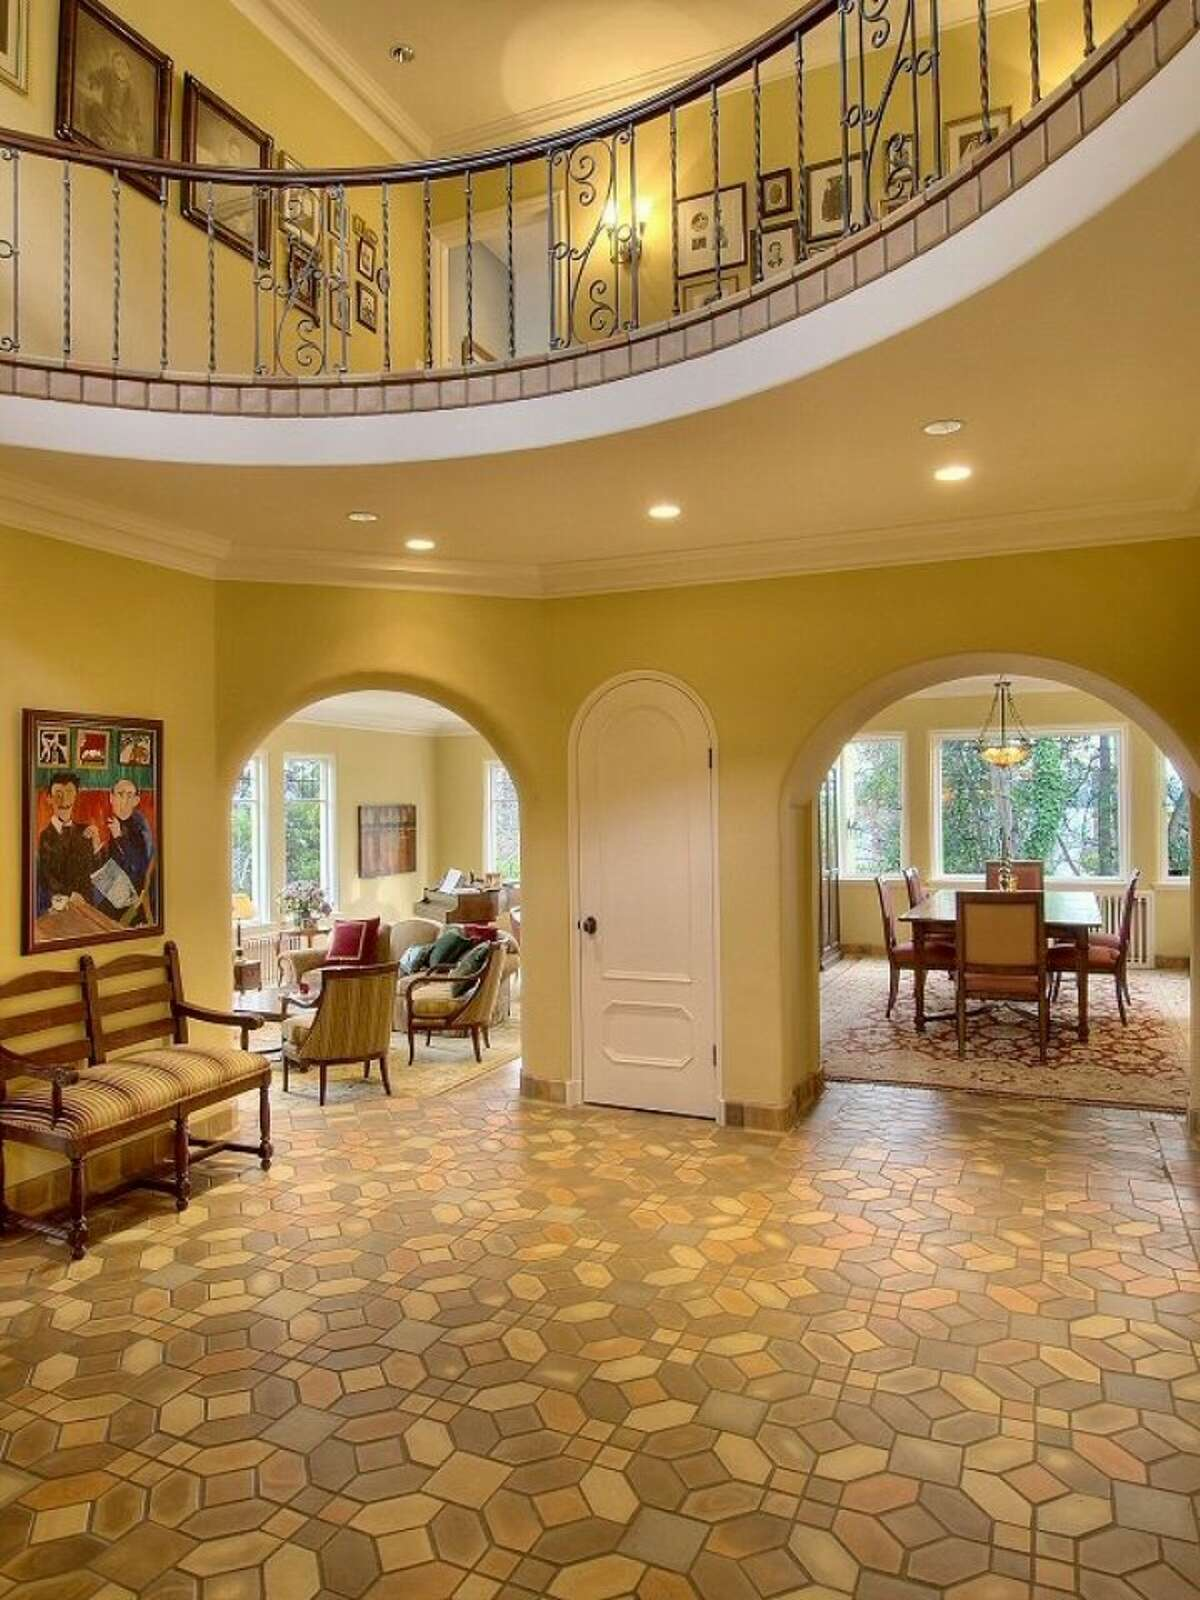 Foyer of 180 Lake Washington Boulevard E.. The 5,490-square-foot house, built in 1928, has four bedrooms, 4.25 bathrooms, arched doorways, a library with a fireplace, a media room, a sun room, a patio and a two-car garage on a 12,975-square-foot lot. It's listed for $3.799 million.